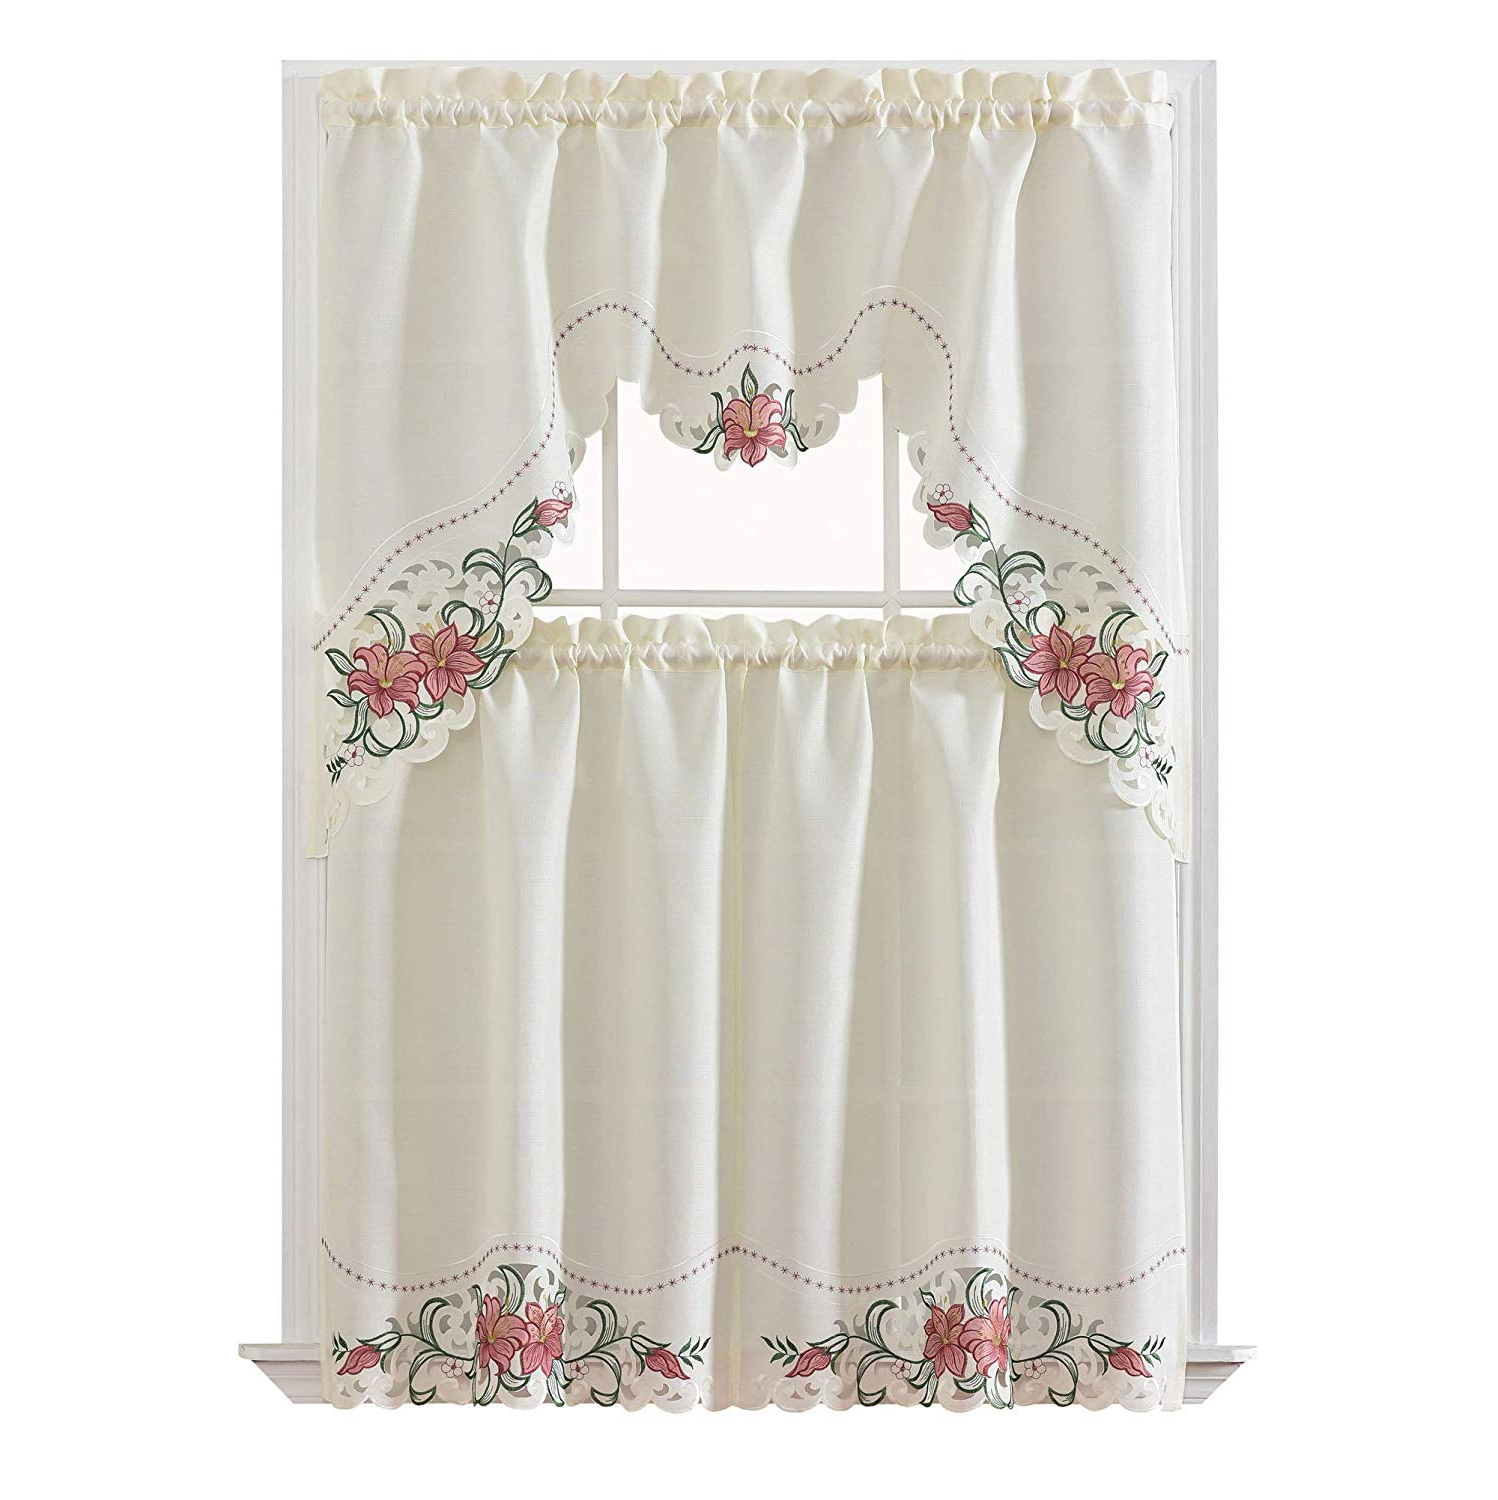 Fashionable Multicolored Printed Curtain Tier And Swag Sets With Regard To Gohd Golden Ocean Home Decor Lily Fragrance. 3Pcs Multi Color Embroidery  Kitchen Cafe Curtain Set Swag And Tiers Set With Cutworks (View 7 of 20)